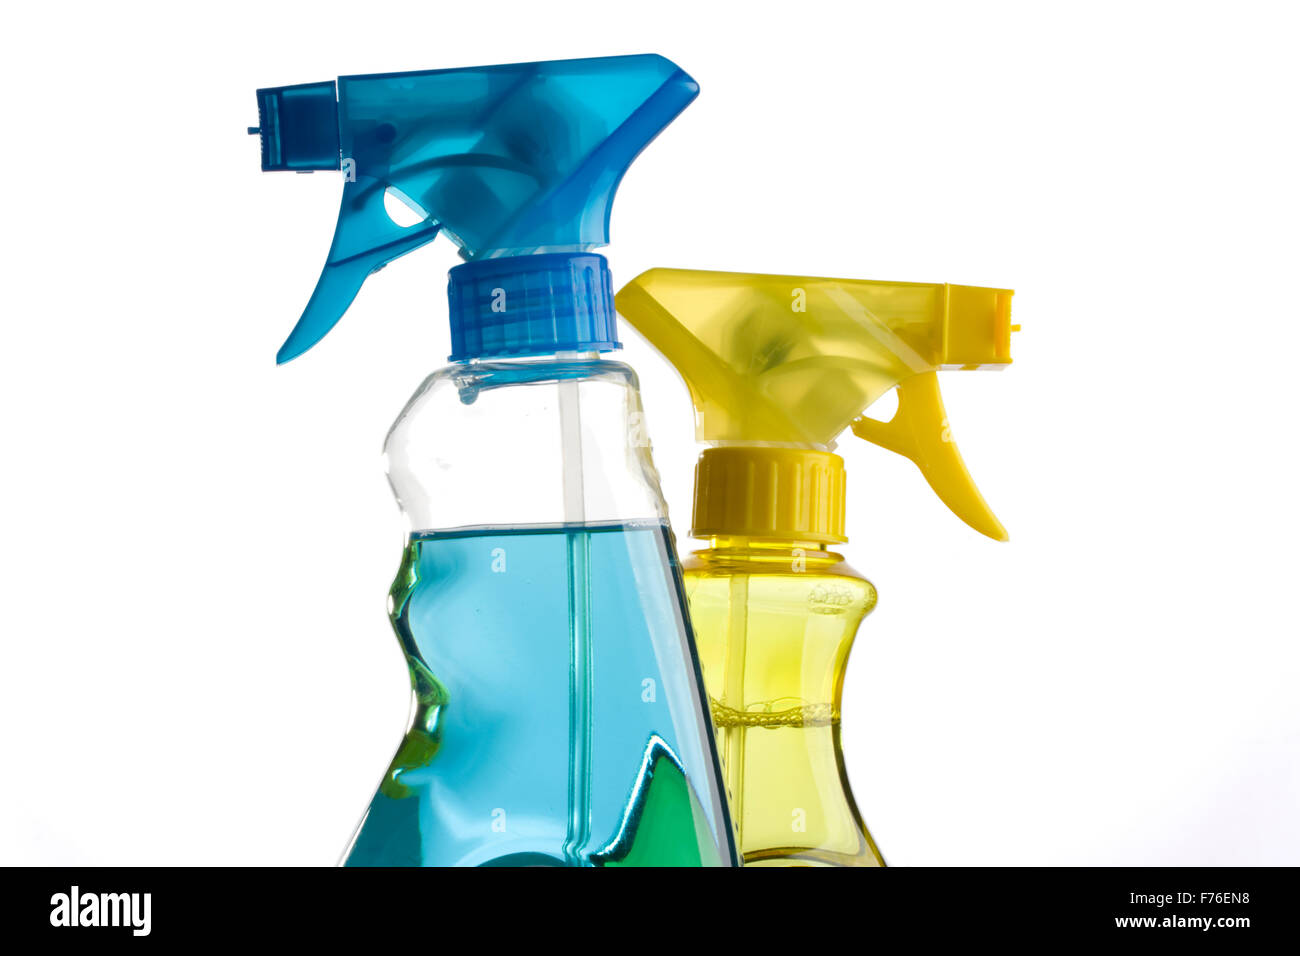 blue and yellow trigger spray bottles - Stock Image